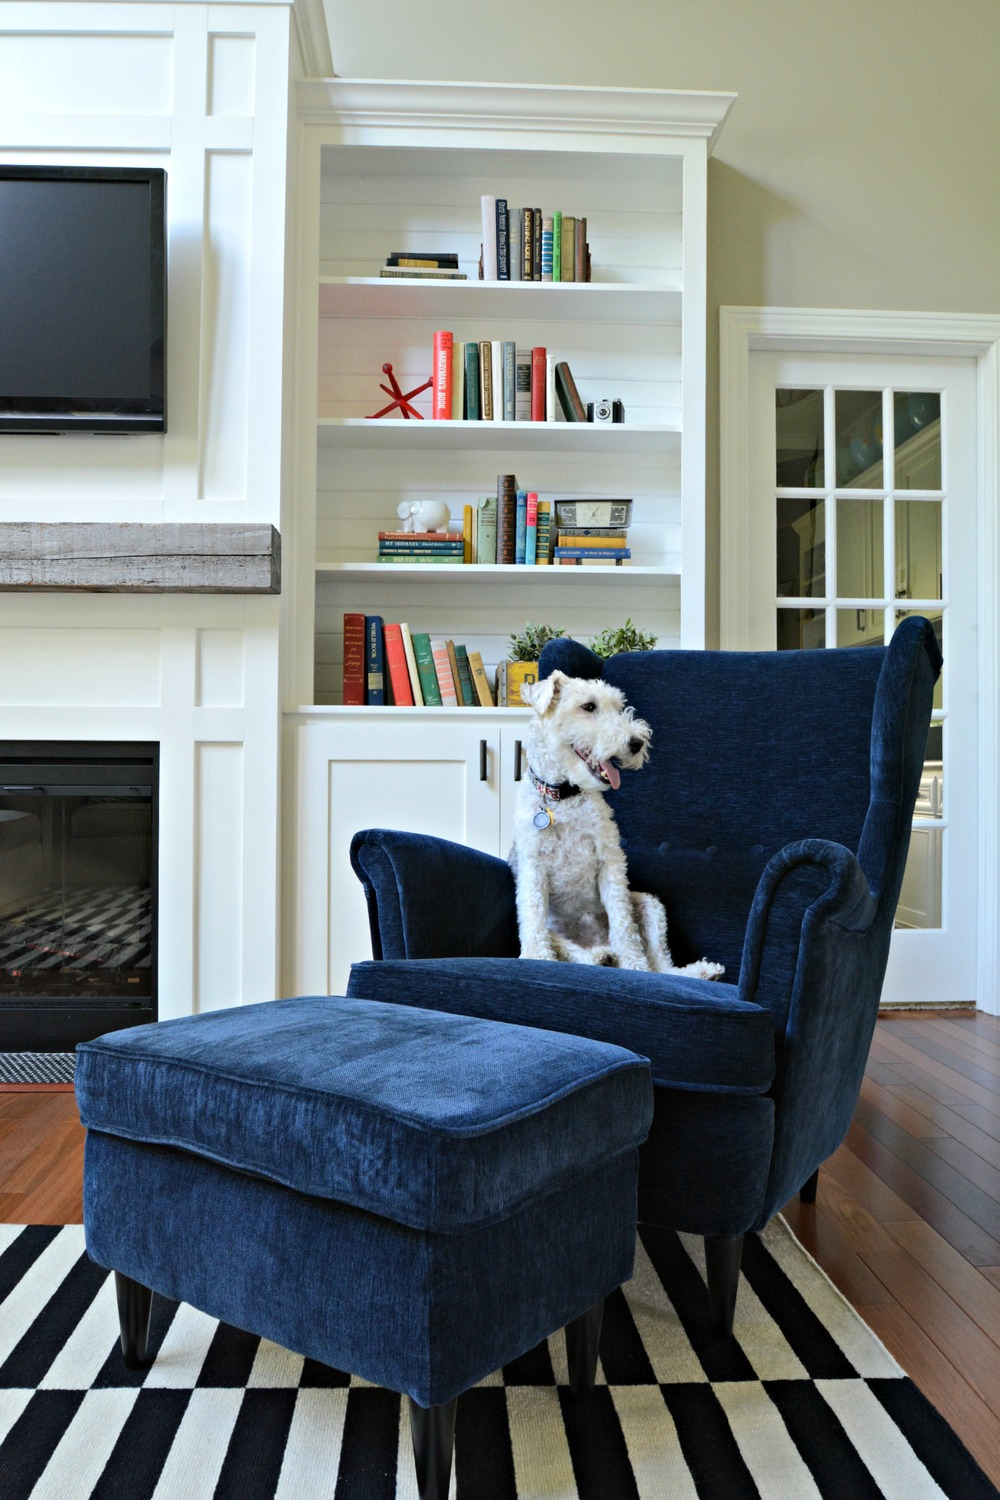 ikea sitting room furniture jeddah catalogue living room updates ikea stockholm rug black white navy barn beam decor and the dog